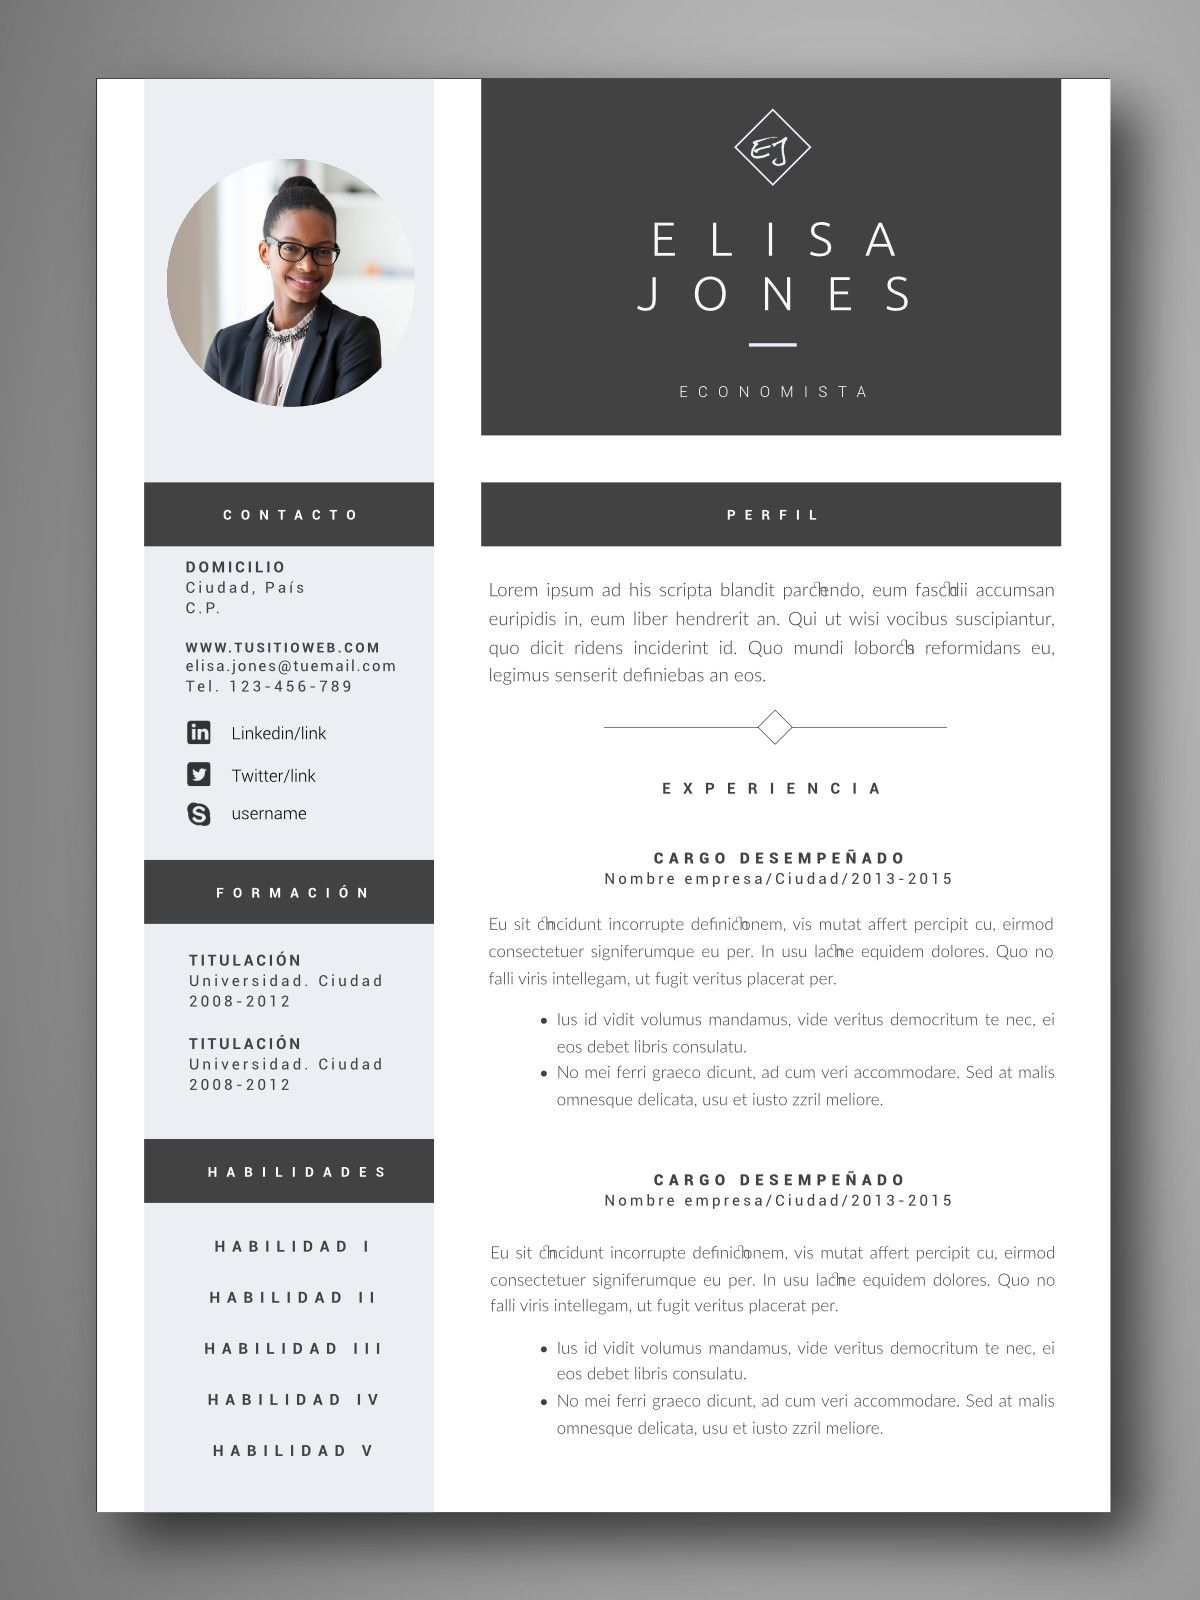 Descarga Plantillas Editables De Curriculum Vitae Cv Visuales Y